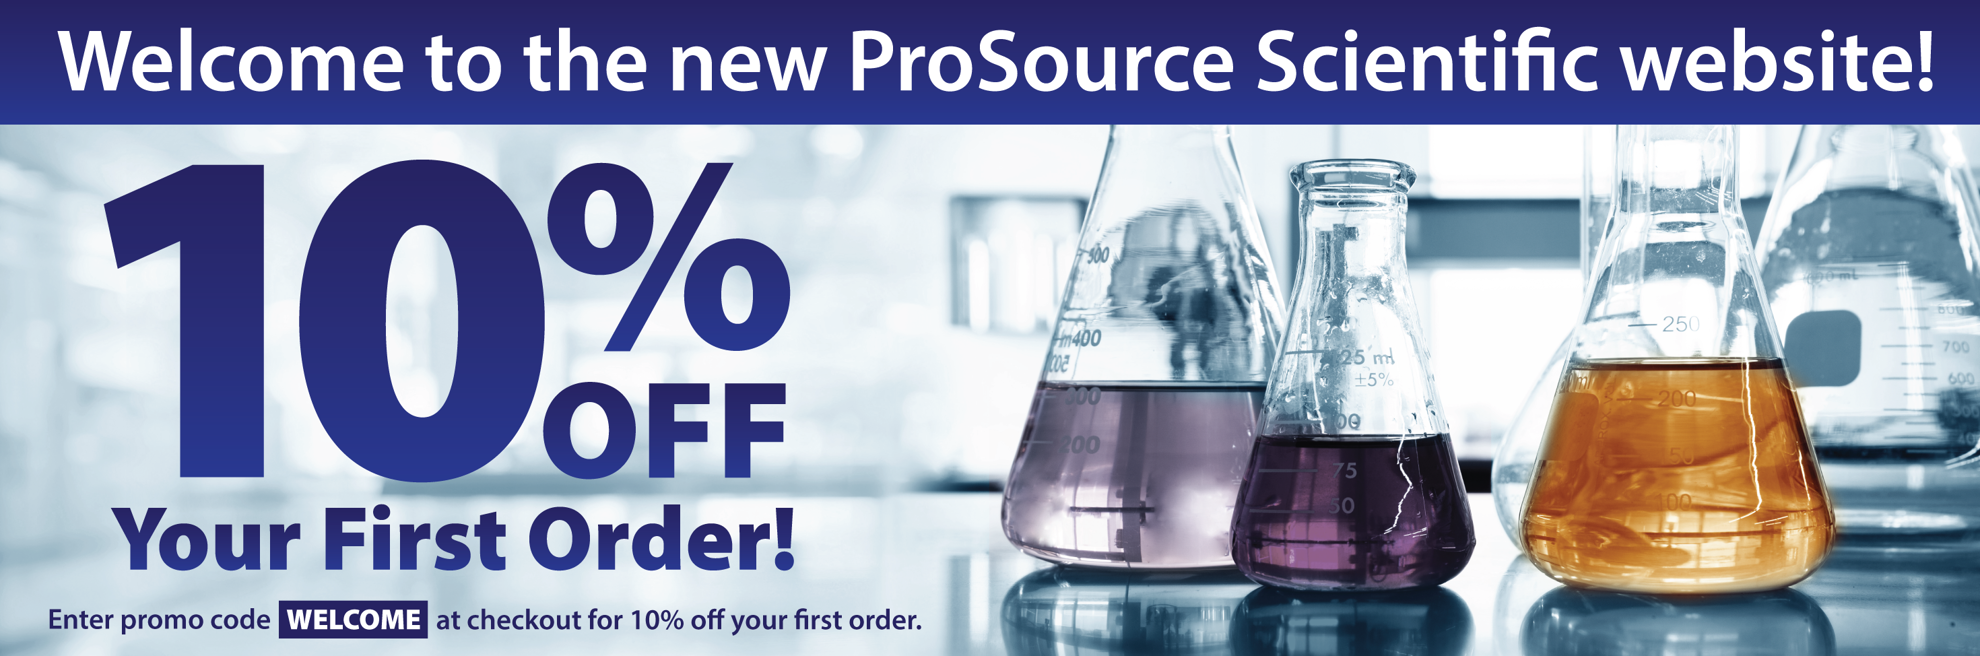 Welcome to ProSource Scientific